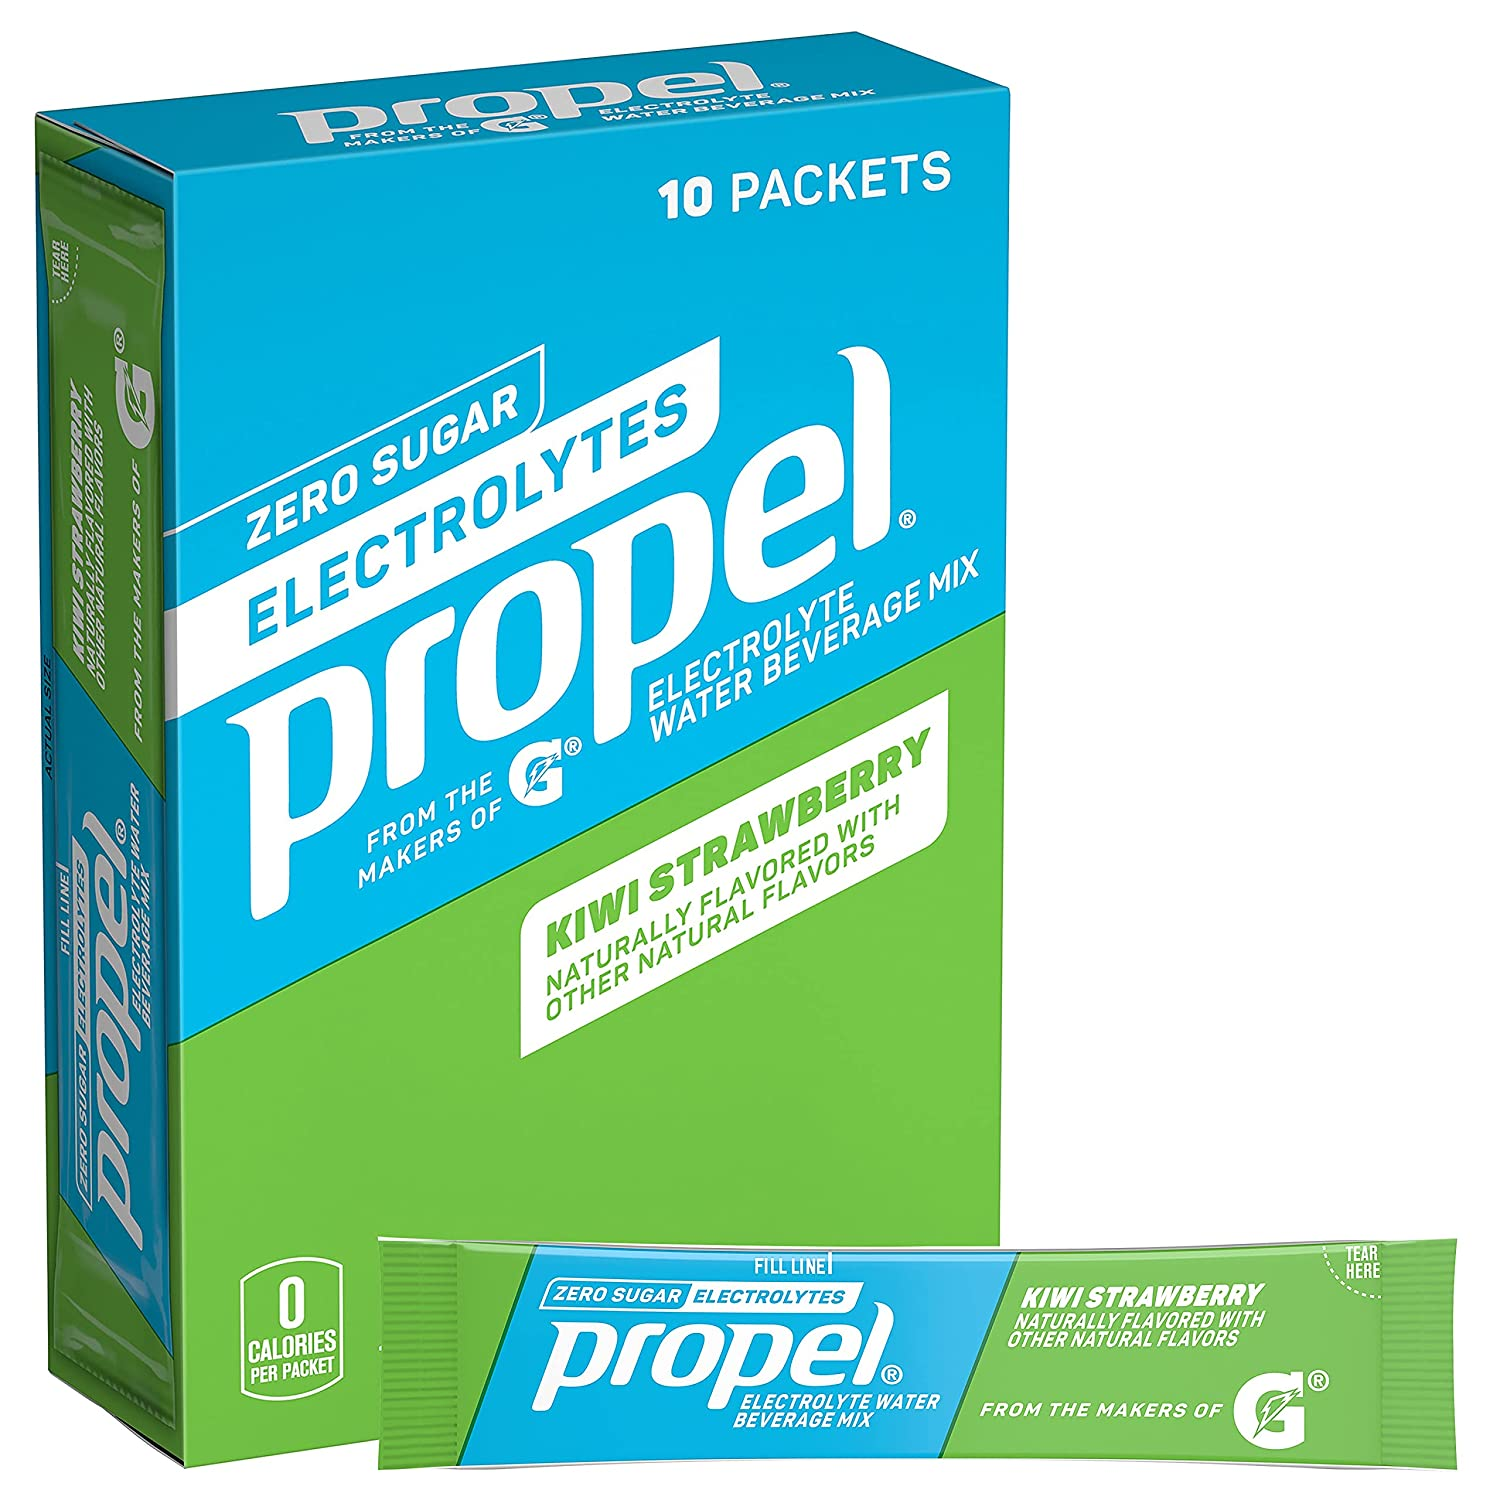 Propel Powder Packets Kiwi Strawberry sale with store Vitamin Electrolytes